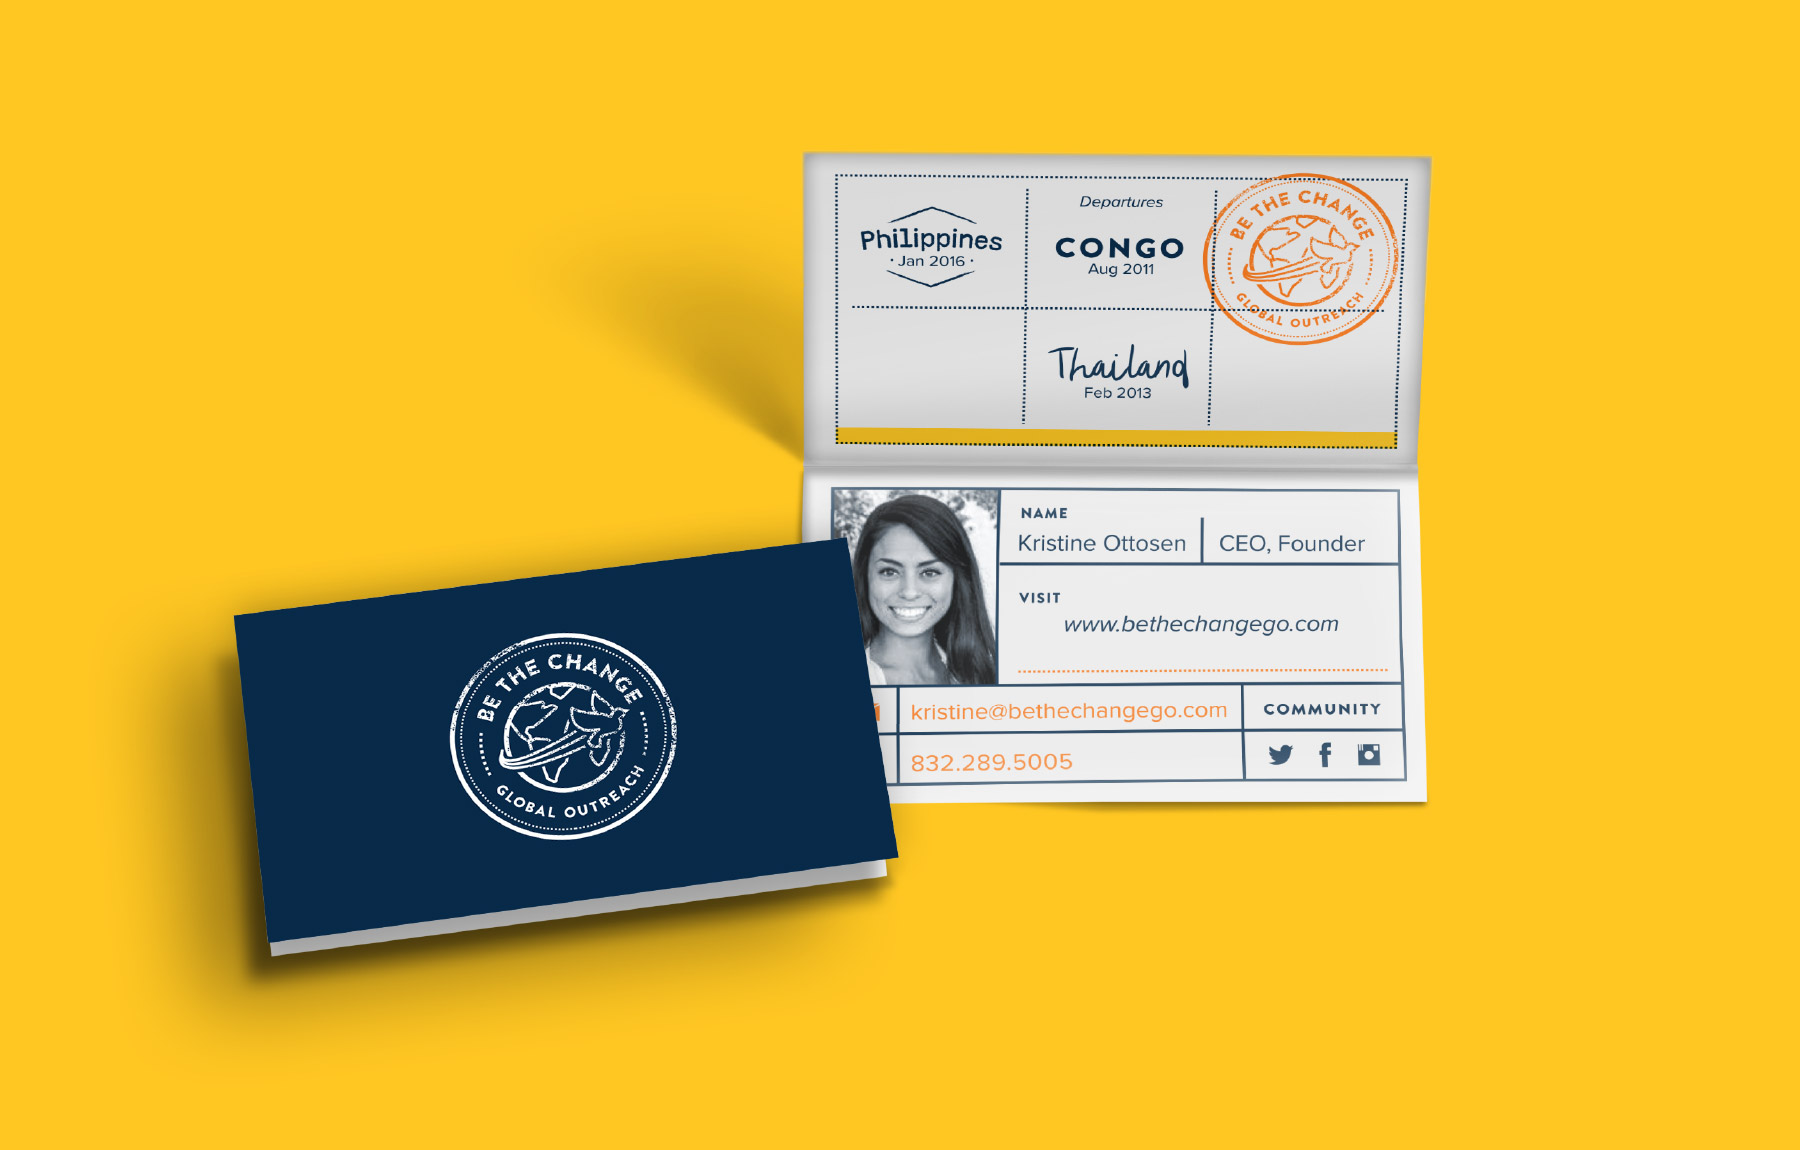 Fun, foldable passport business card design